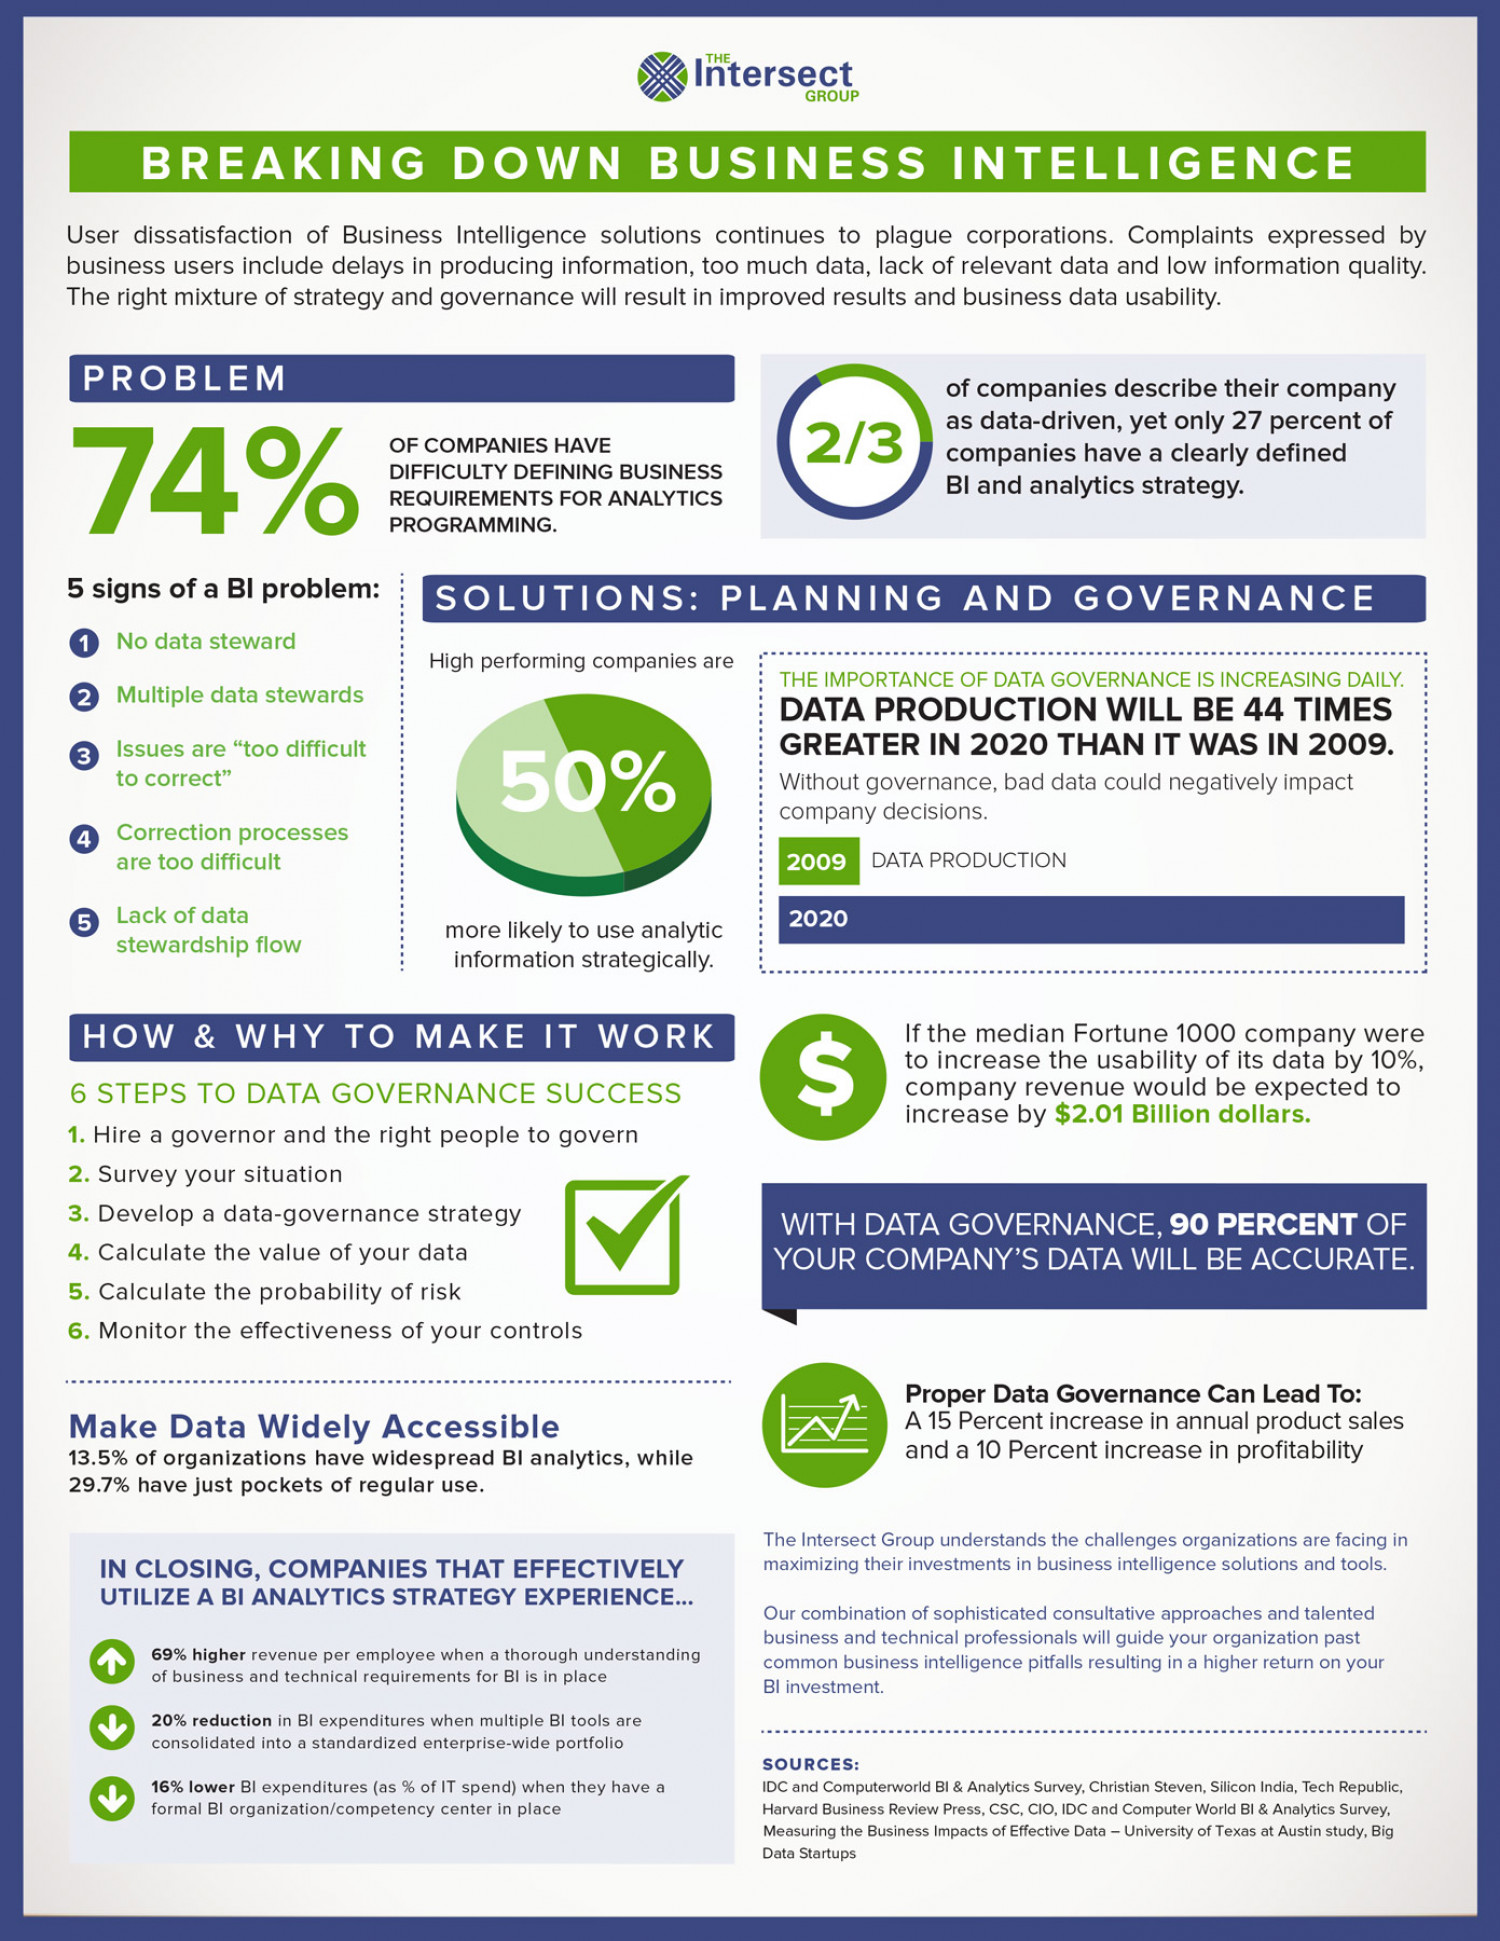 Breaking Down Business Intelligence Infographic